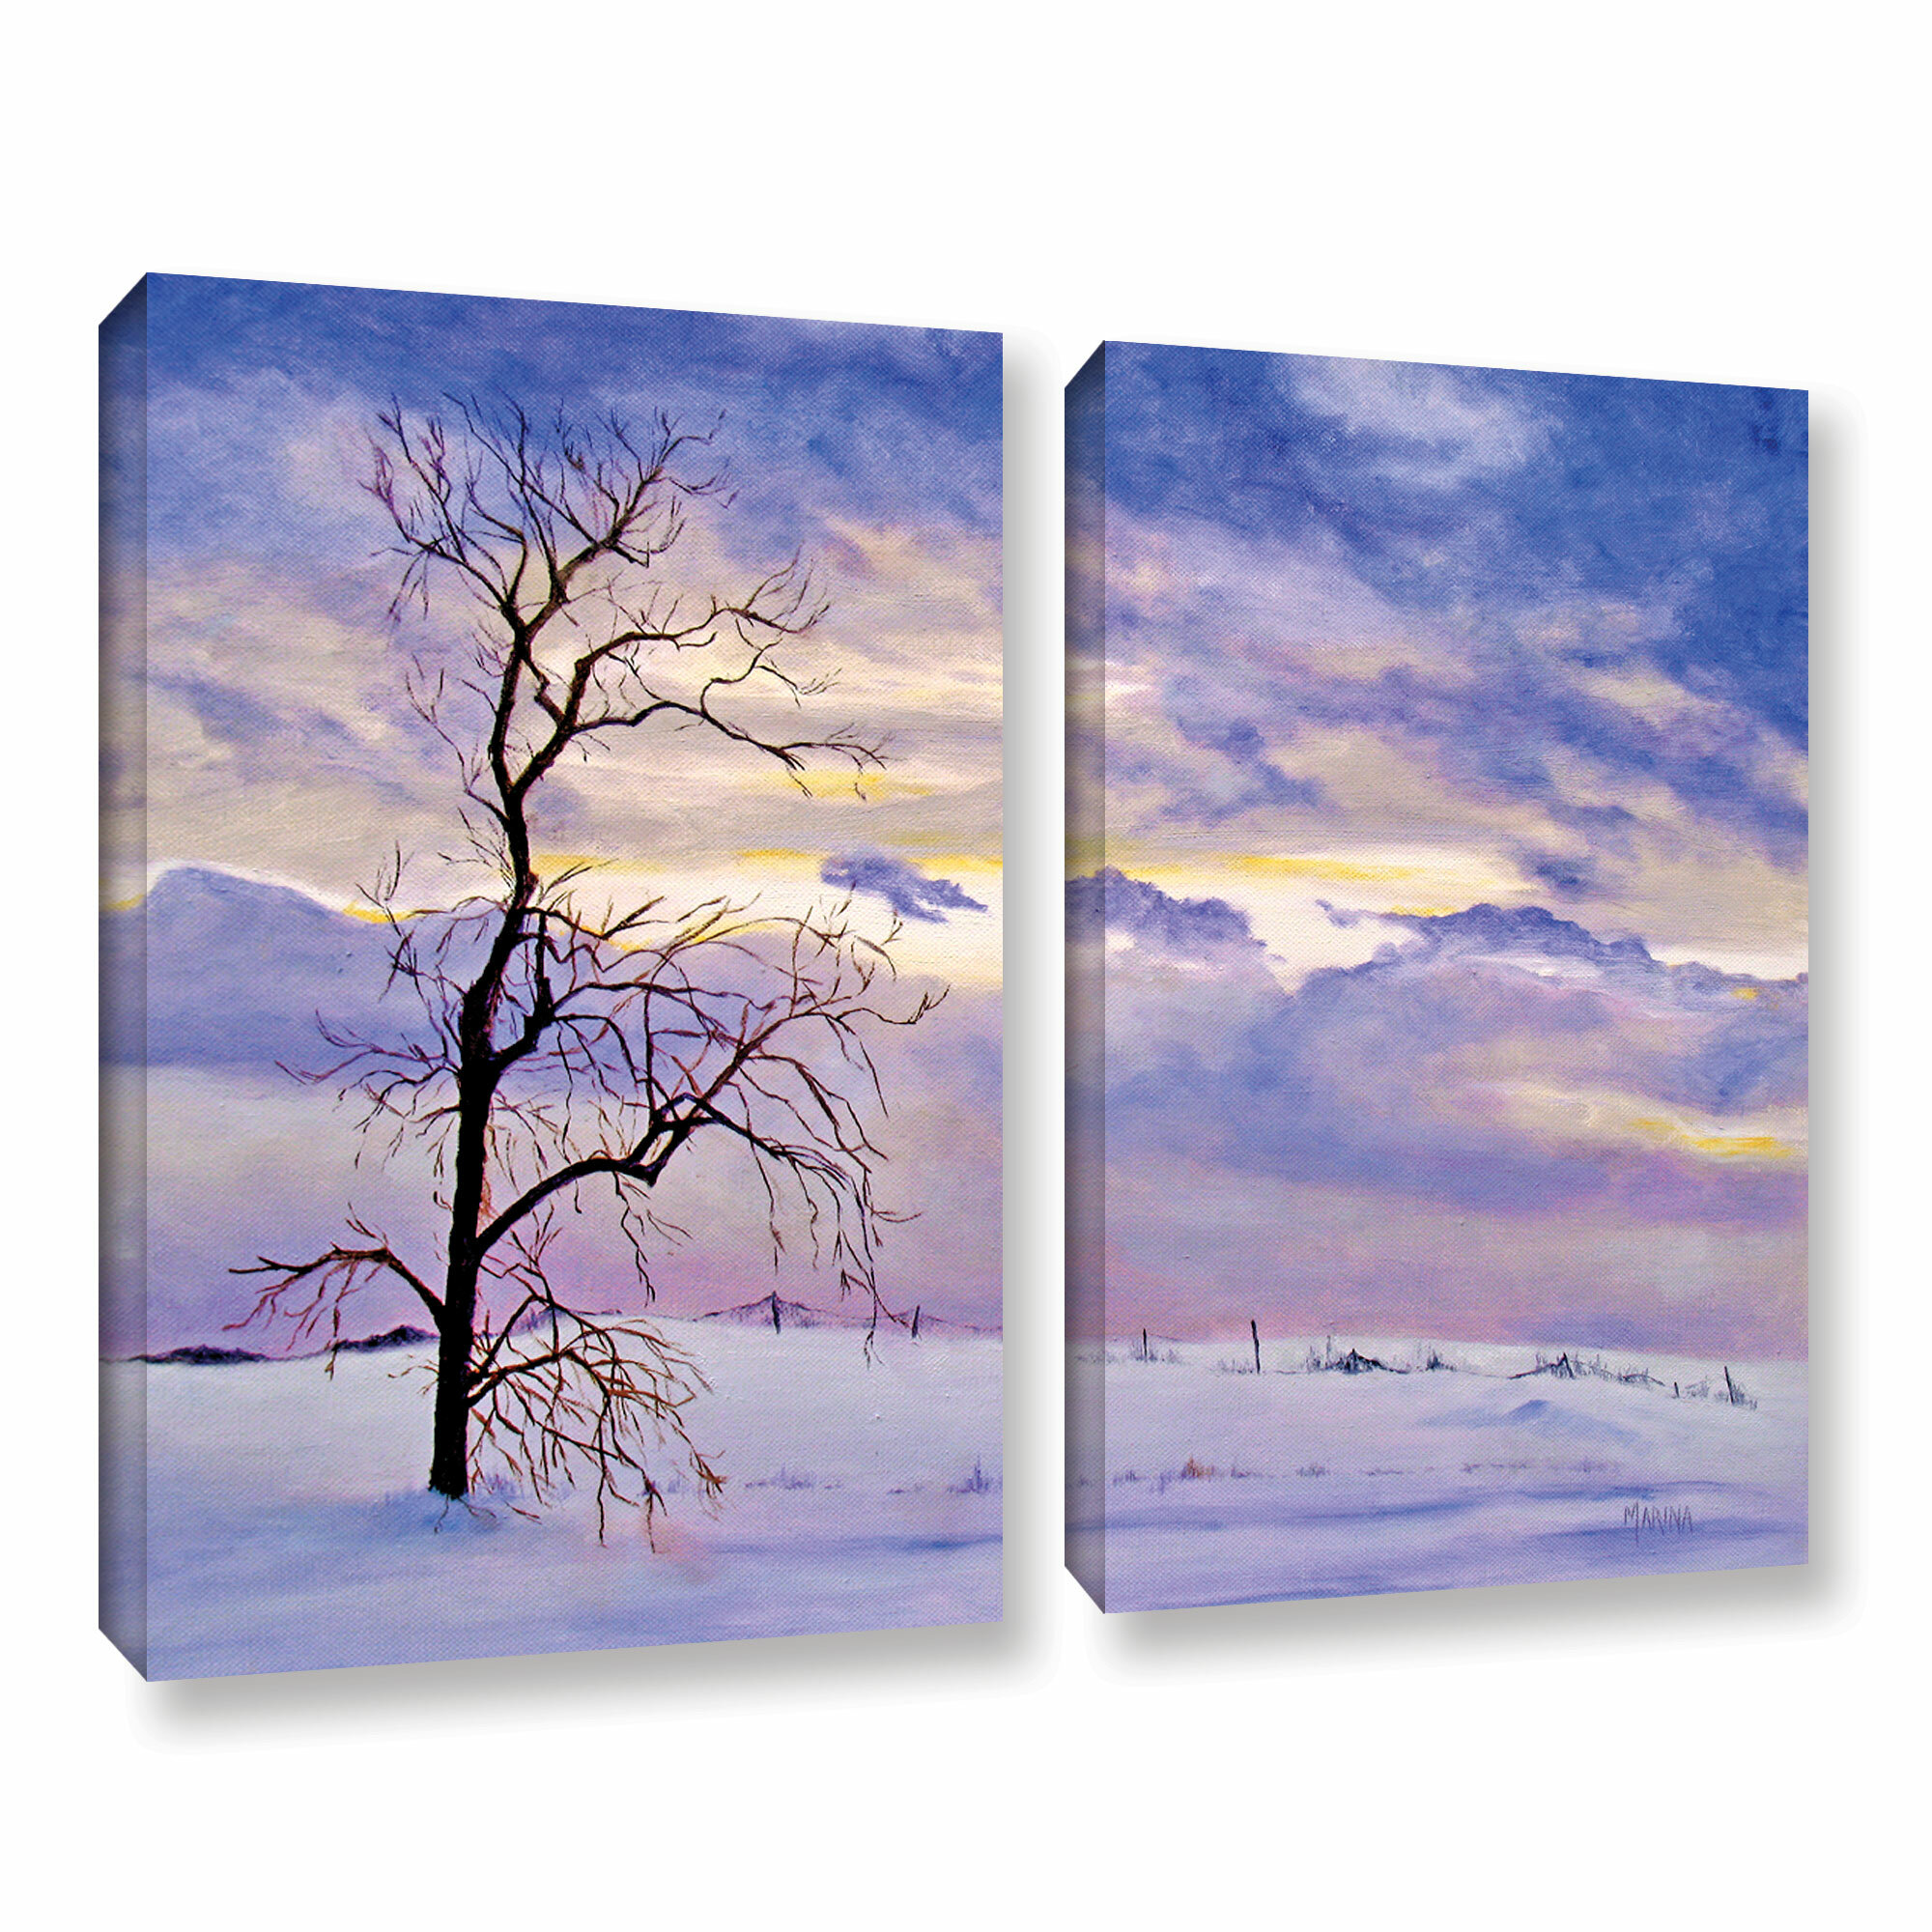 Artwall Solitude By Marina Petro 2 Piece Painting Print On Wrapped Canvas Set Wayfair